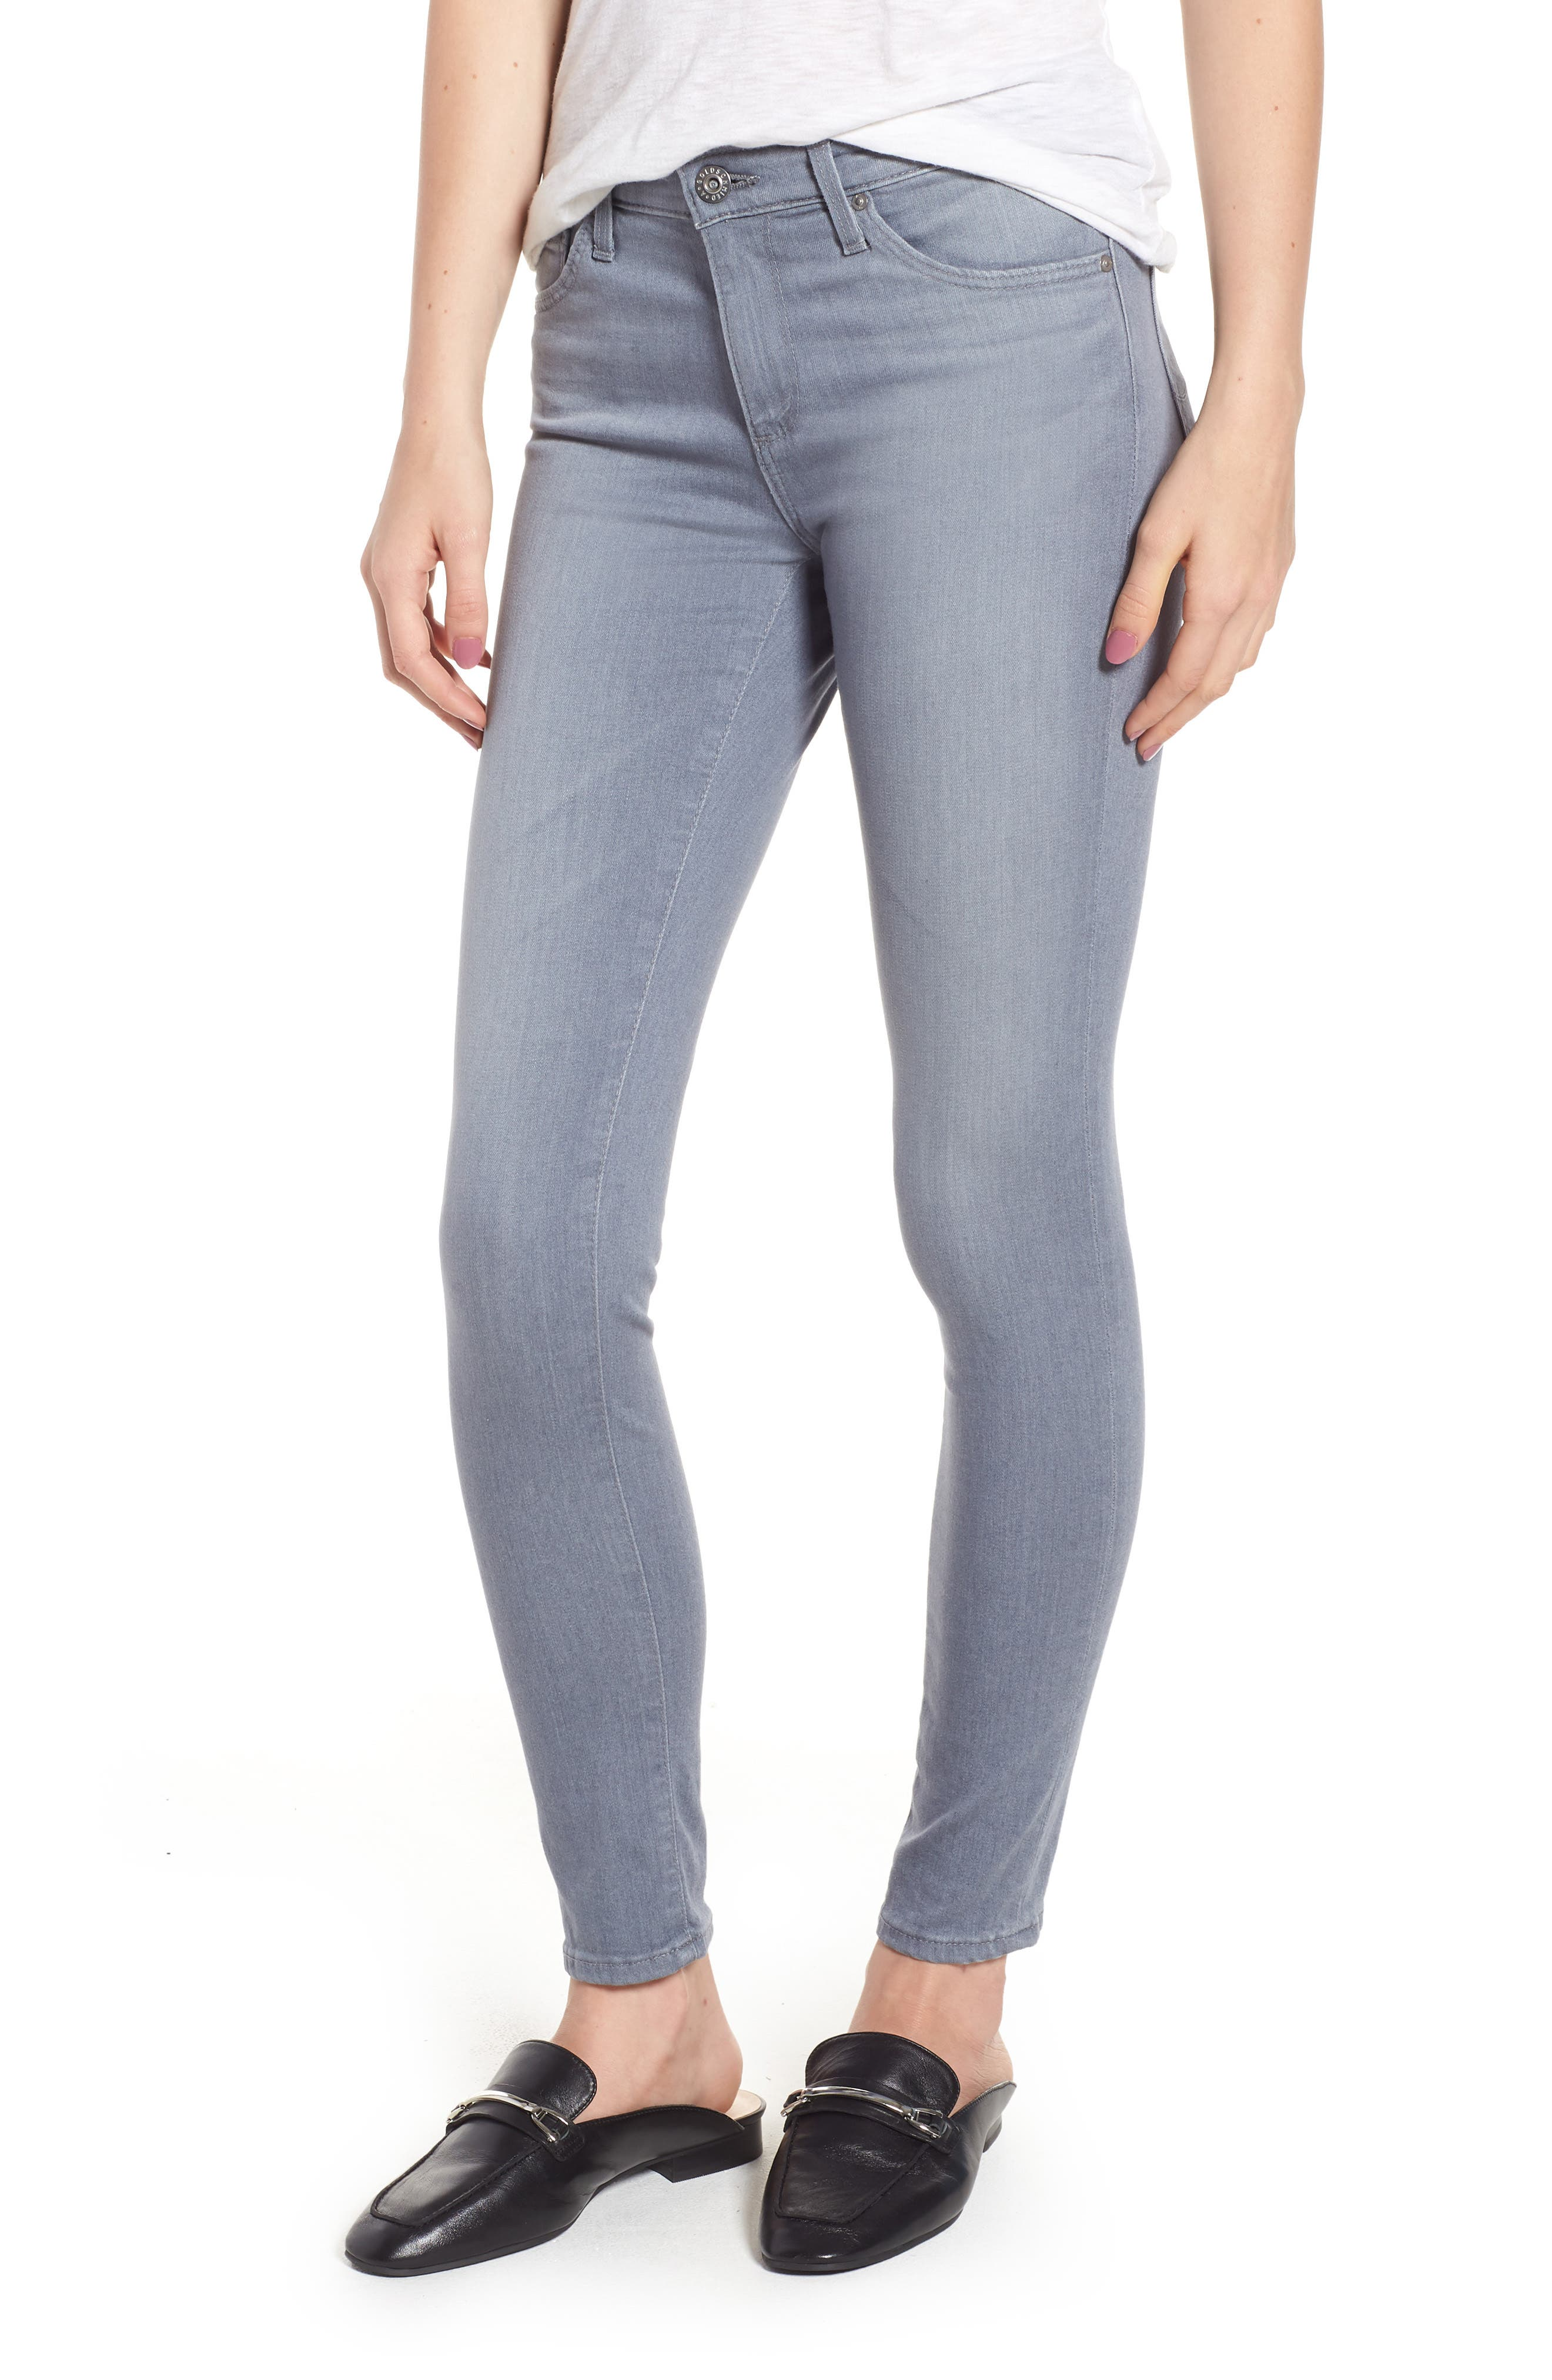 Ankle 'The Legging' Super Skinny Jeans,                             Main thumbnail 1, color,                             Valley Smoke